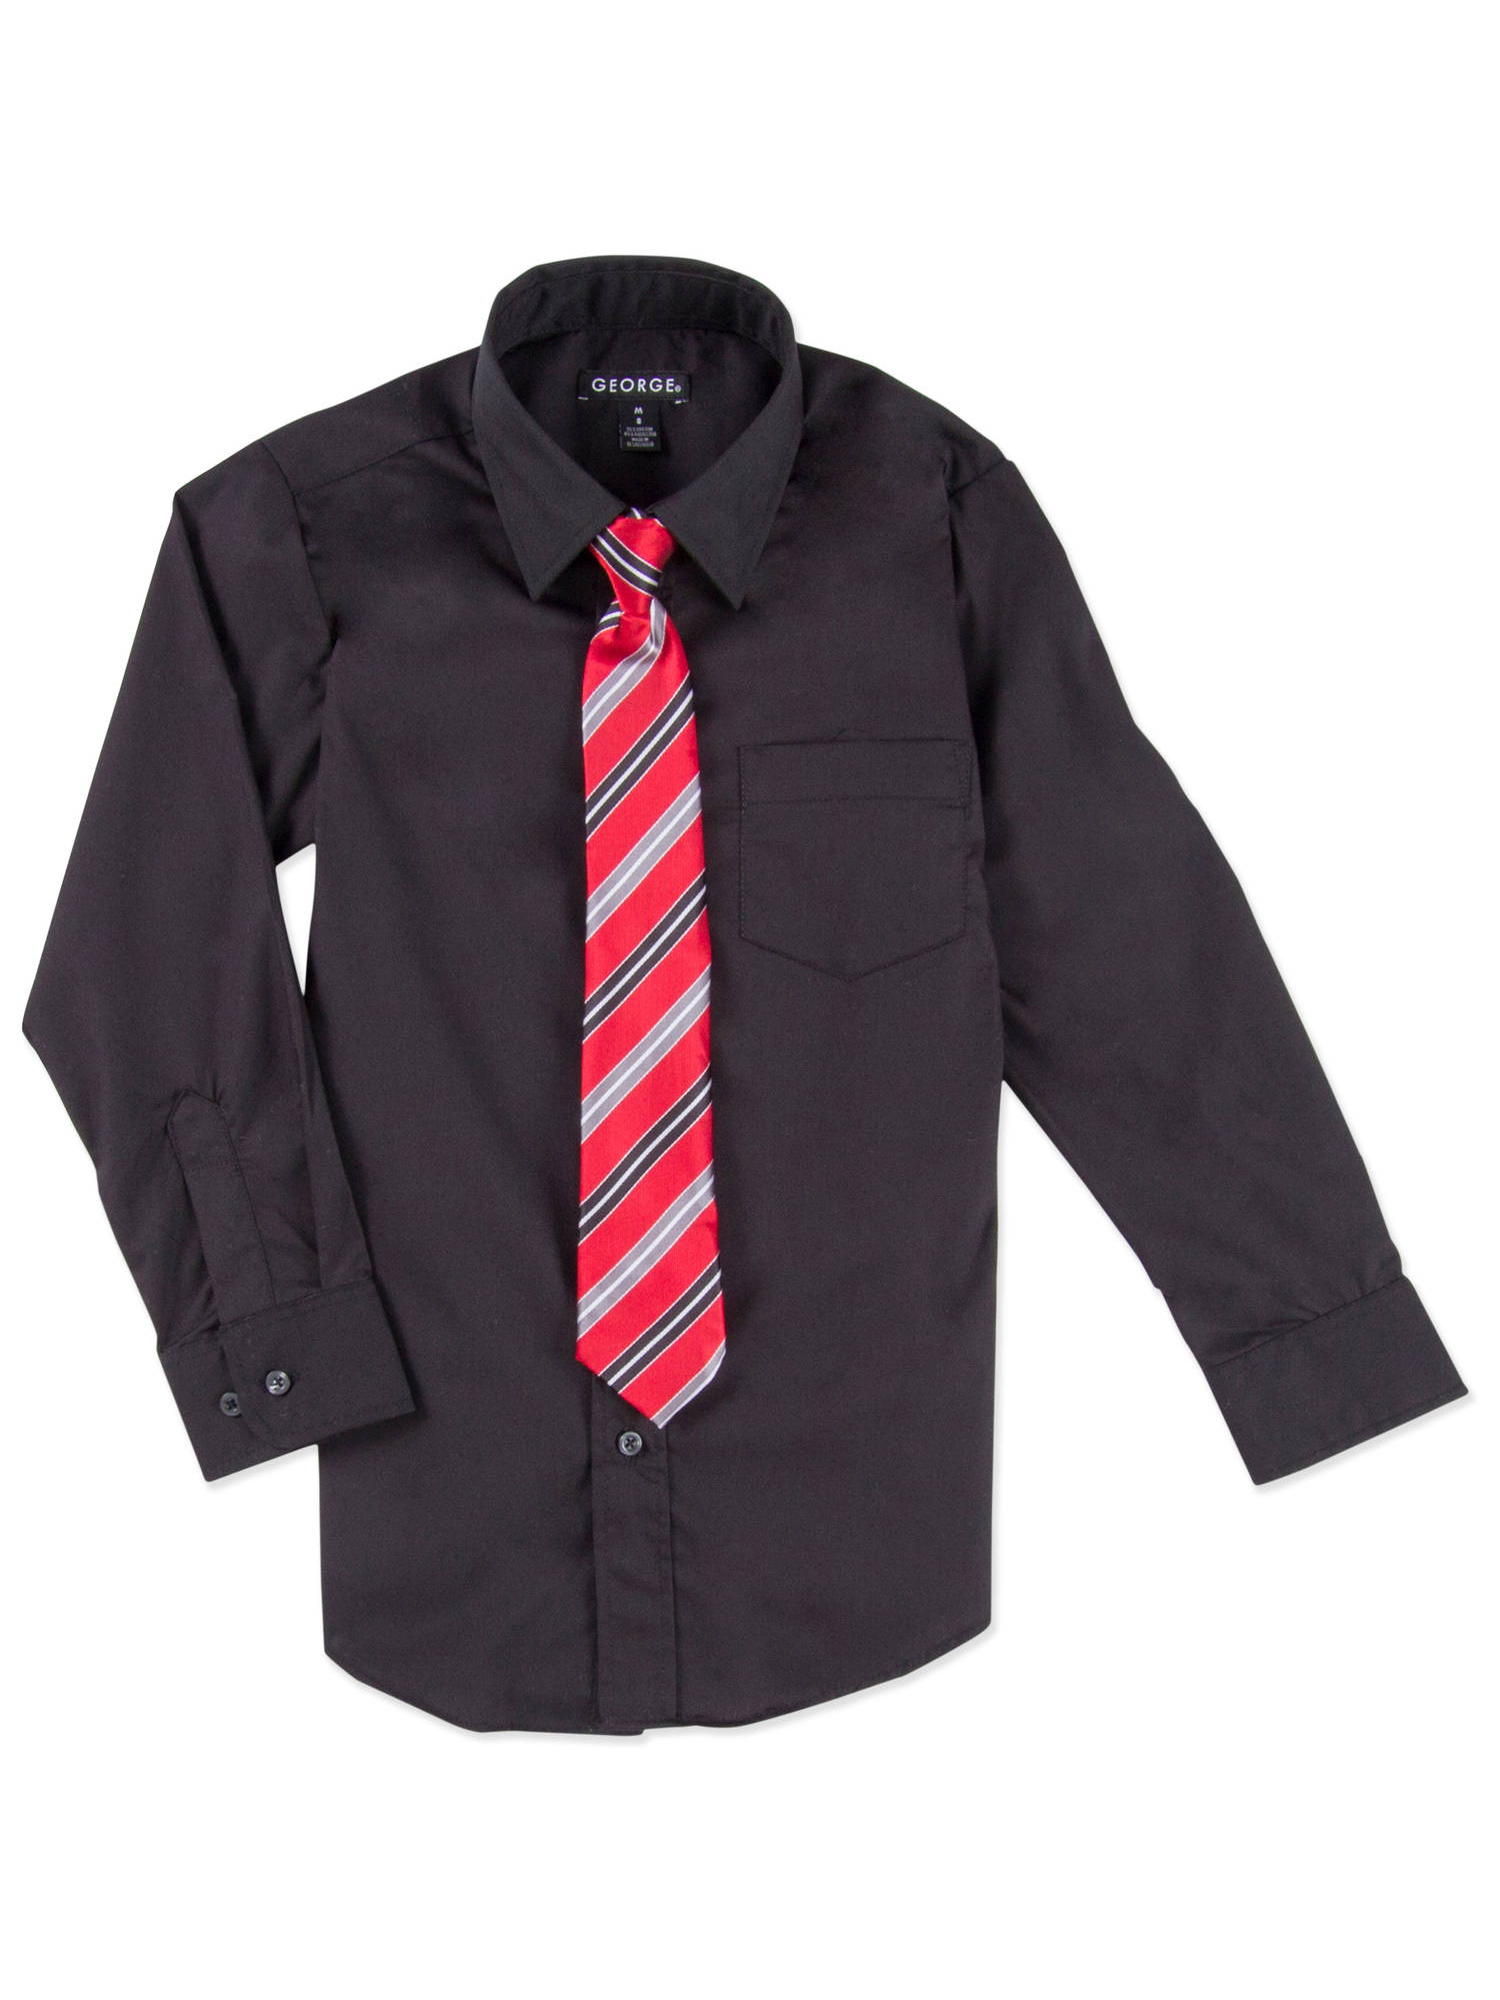 George Boys Packaged Dress Shirt-Tie